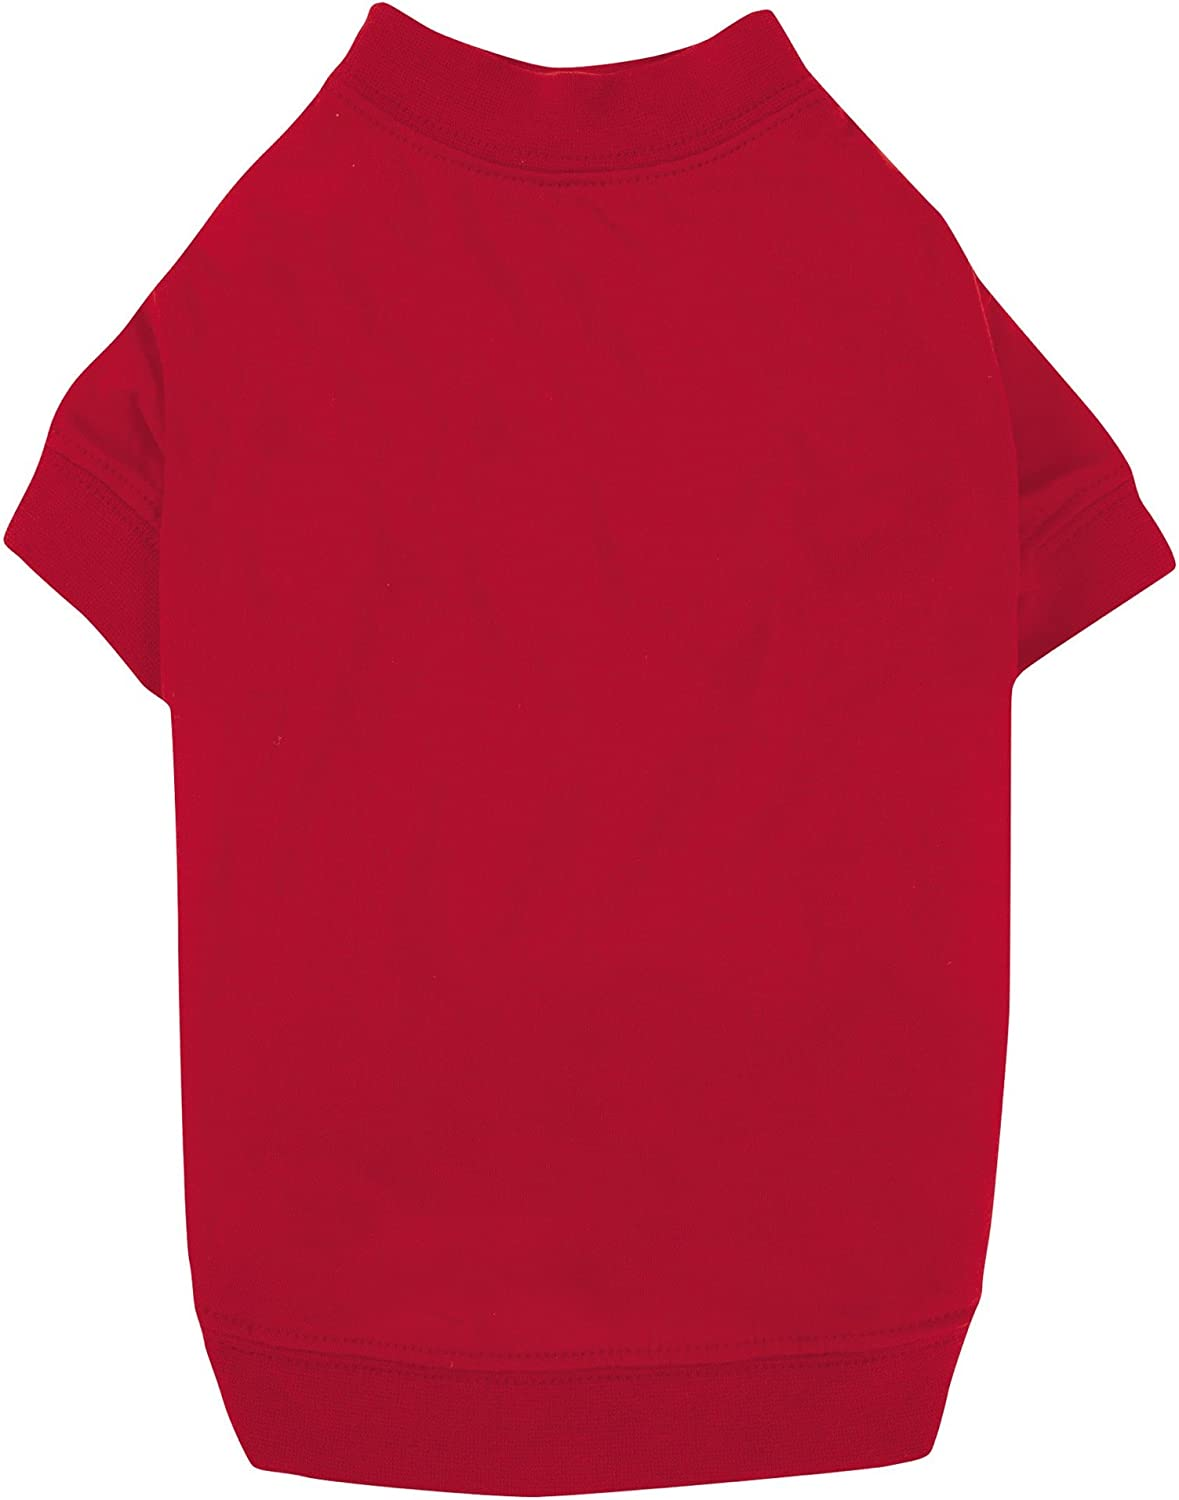 Zack & Zoey Basic Tee Shirt for Dogs